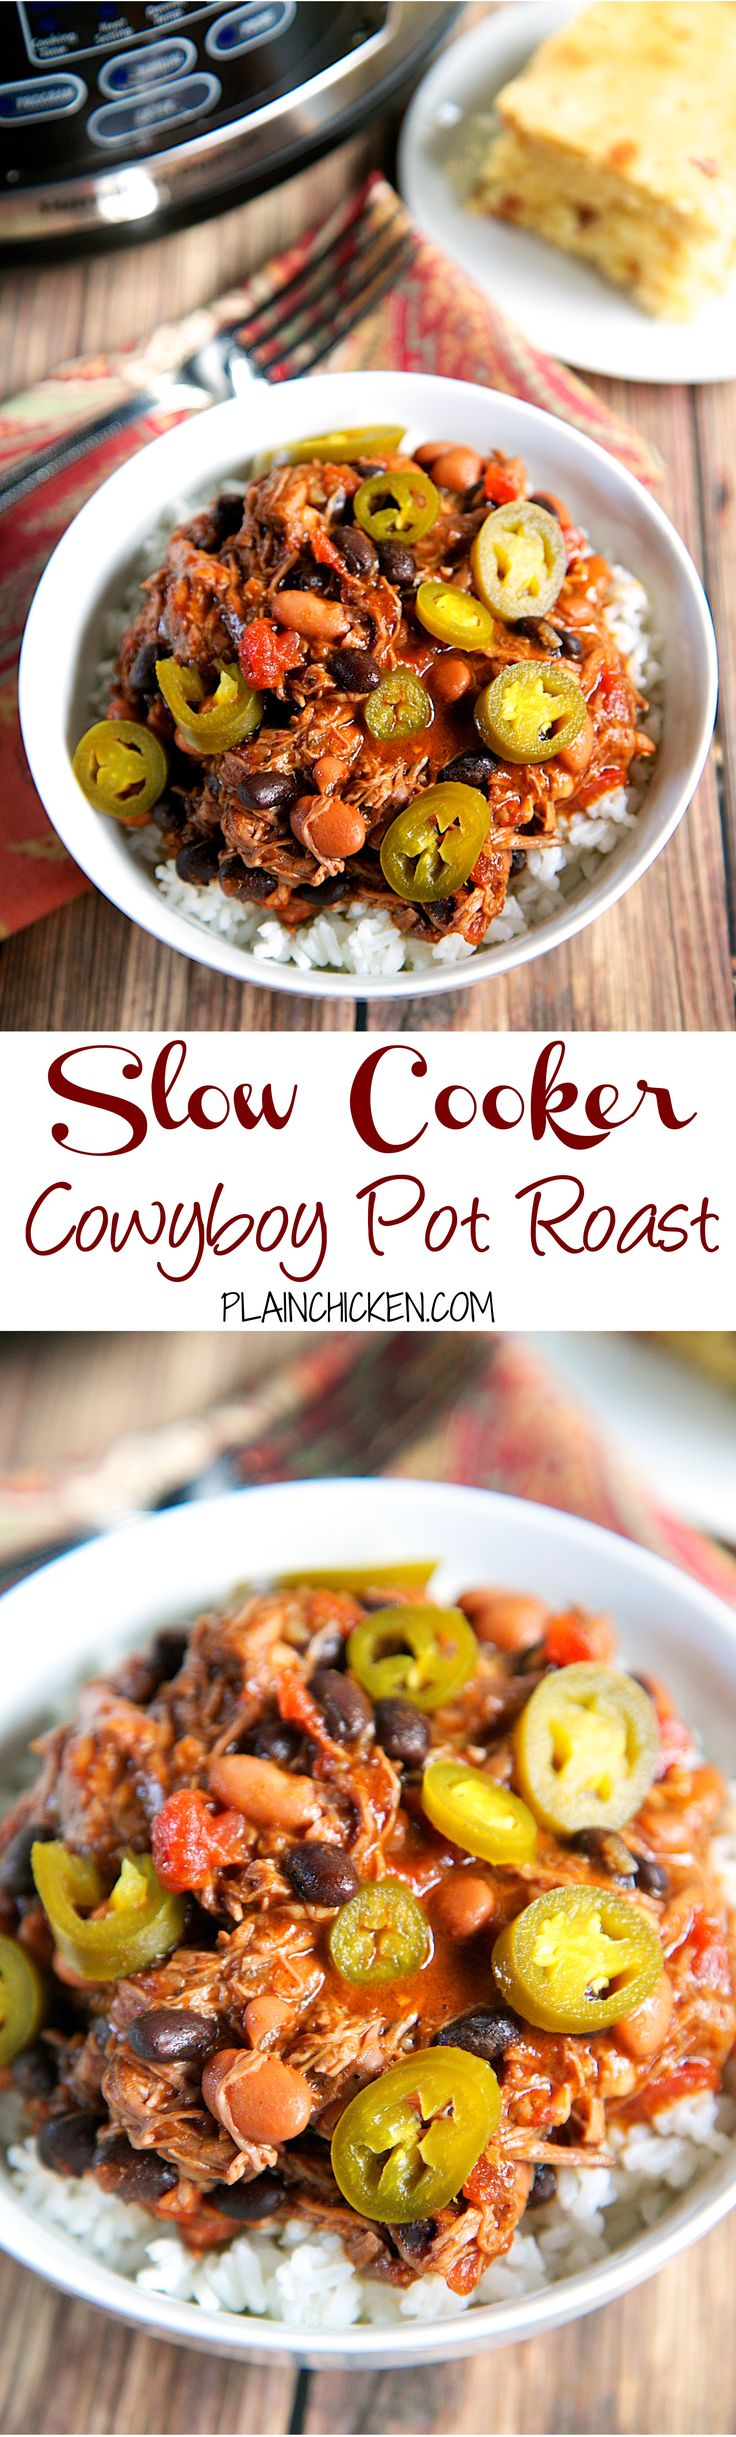 {Slow Cooker} Cowboy Pot Roast recipe - pot roast slow cooked with pinto beans, Rotel tomatoes, black beans and chili powder. SO good! Serve over rice and top with pickled jalapeños. Also makes a great freezer meal!